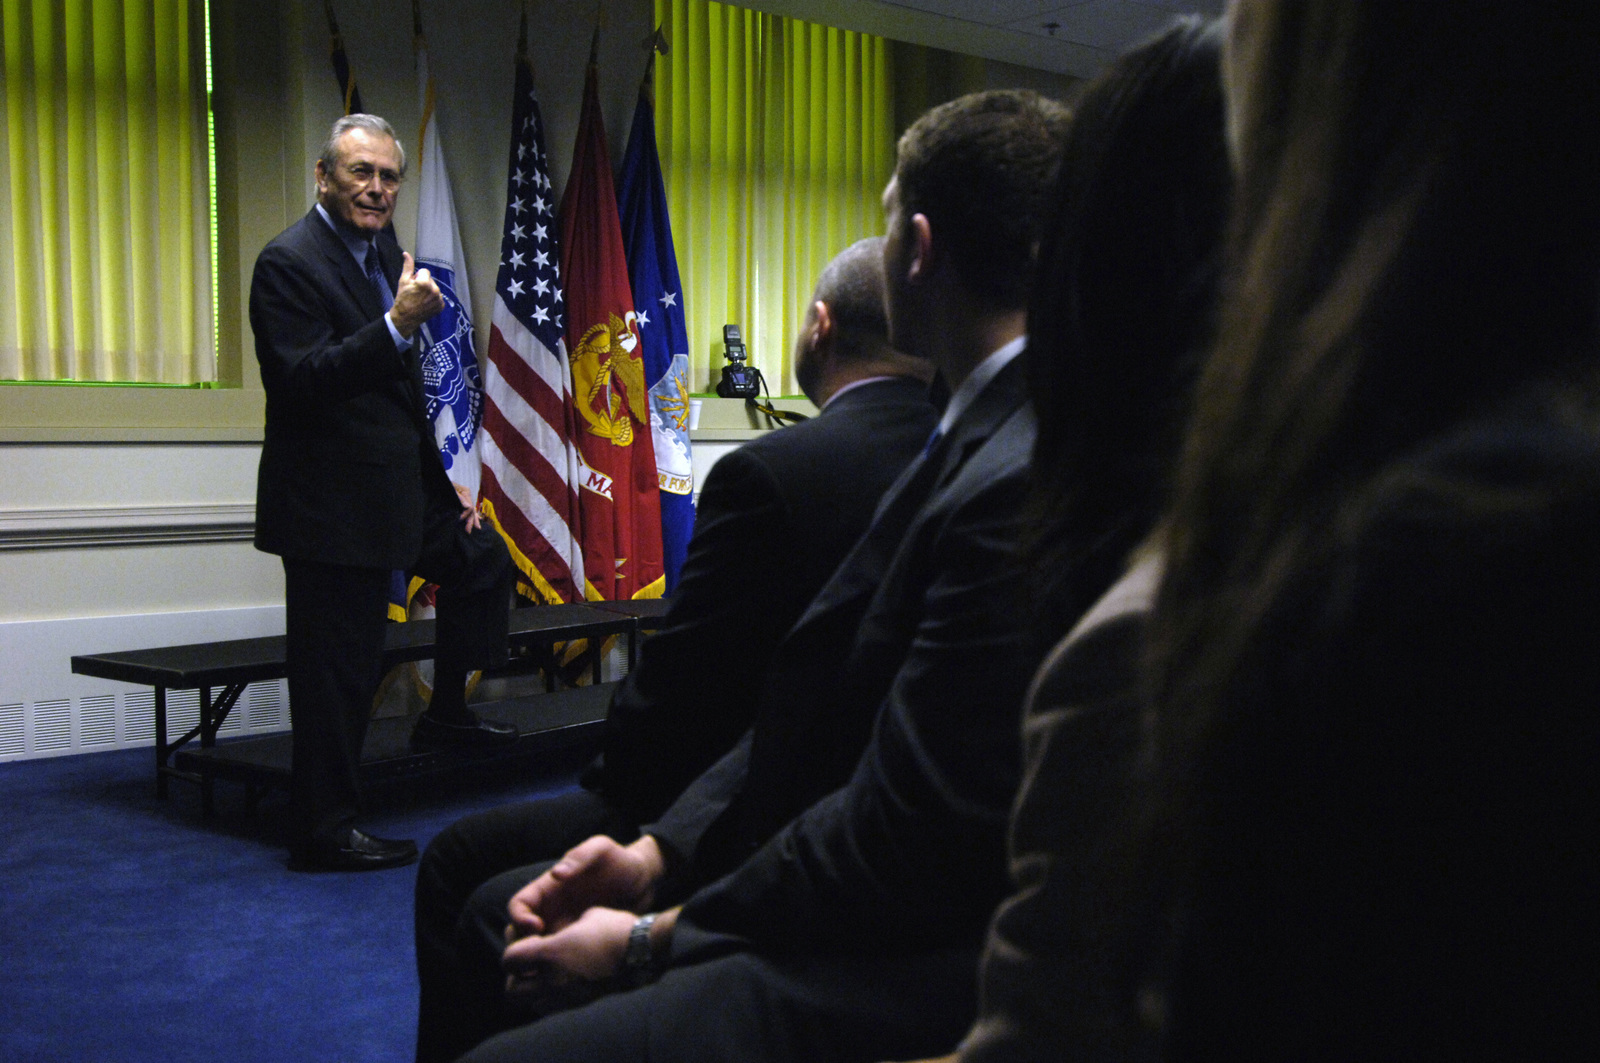 """The Honorable Donald H. Rumsfeld (left), U.S. Secretary of Defense (SECDEF), speaks to political science students from Whittier College, Calif., at the Pentagon, Washington, D.C., Jan. 30, 2006.  The students are on a weeklong visit to the area to culminate a course entitled,""""Nixon's Complex Legacy.""""The SECDEF gave his perspective from his time in the Nixon Administration as Director of Economic Opportunity and as the Chairman of the Gerald R. Ford Transition to Presidency in 1974.  (DoD photo by PETTY Officer 1ST Class Chad J. McNeeley) (Released)"""